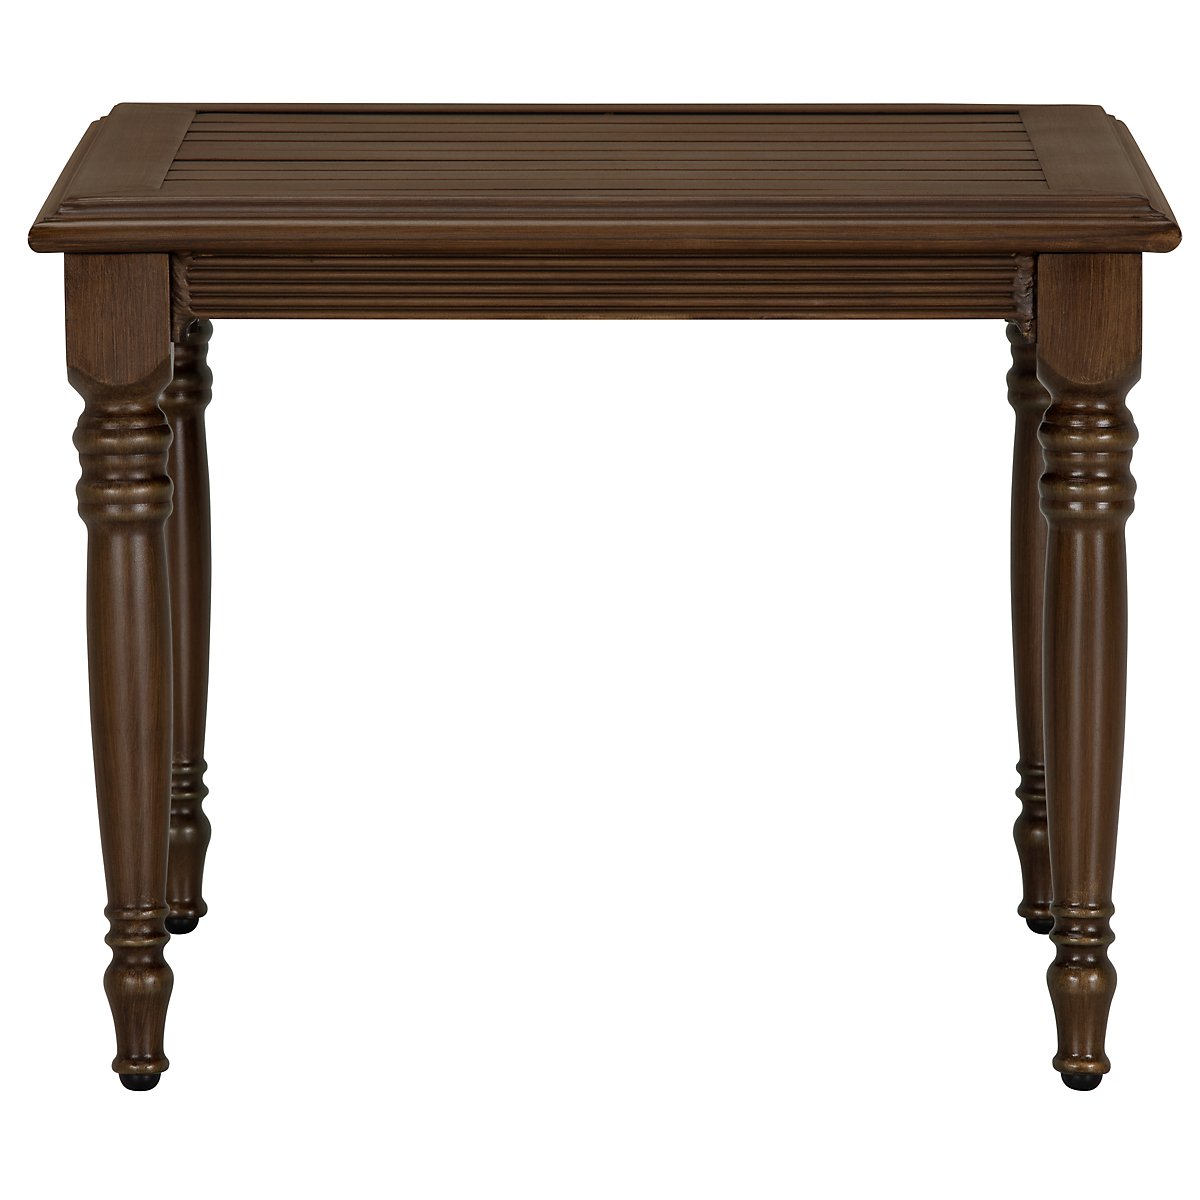 Tradewinds Dark Tone End Table